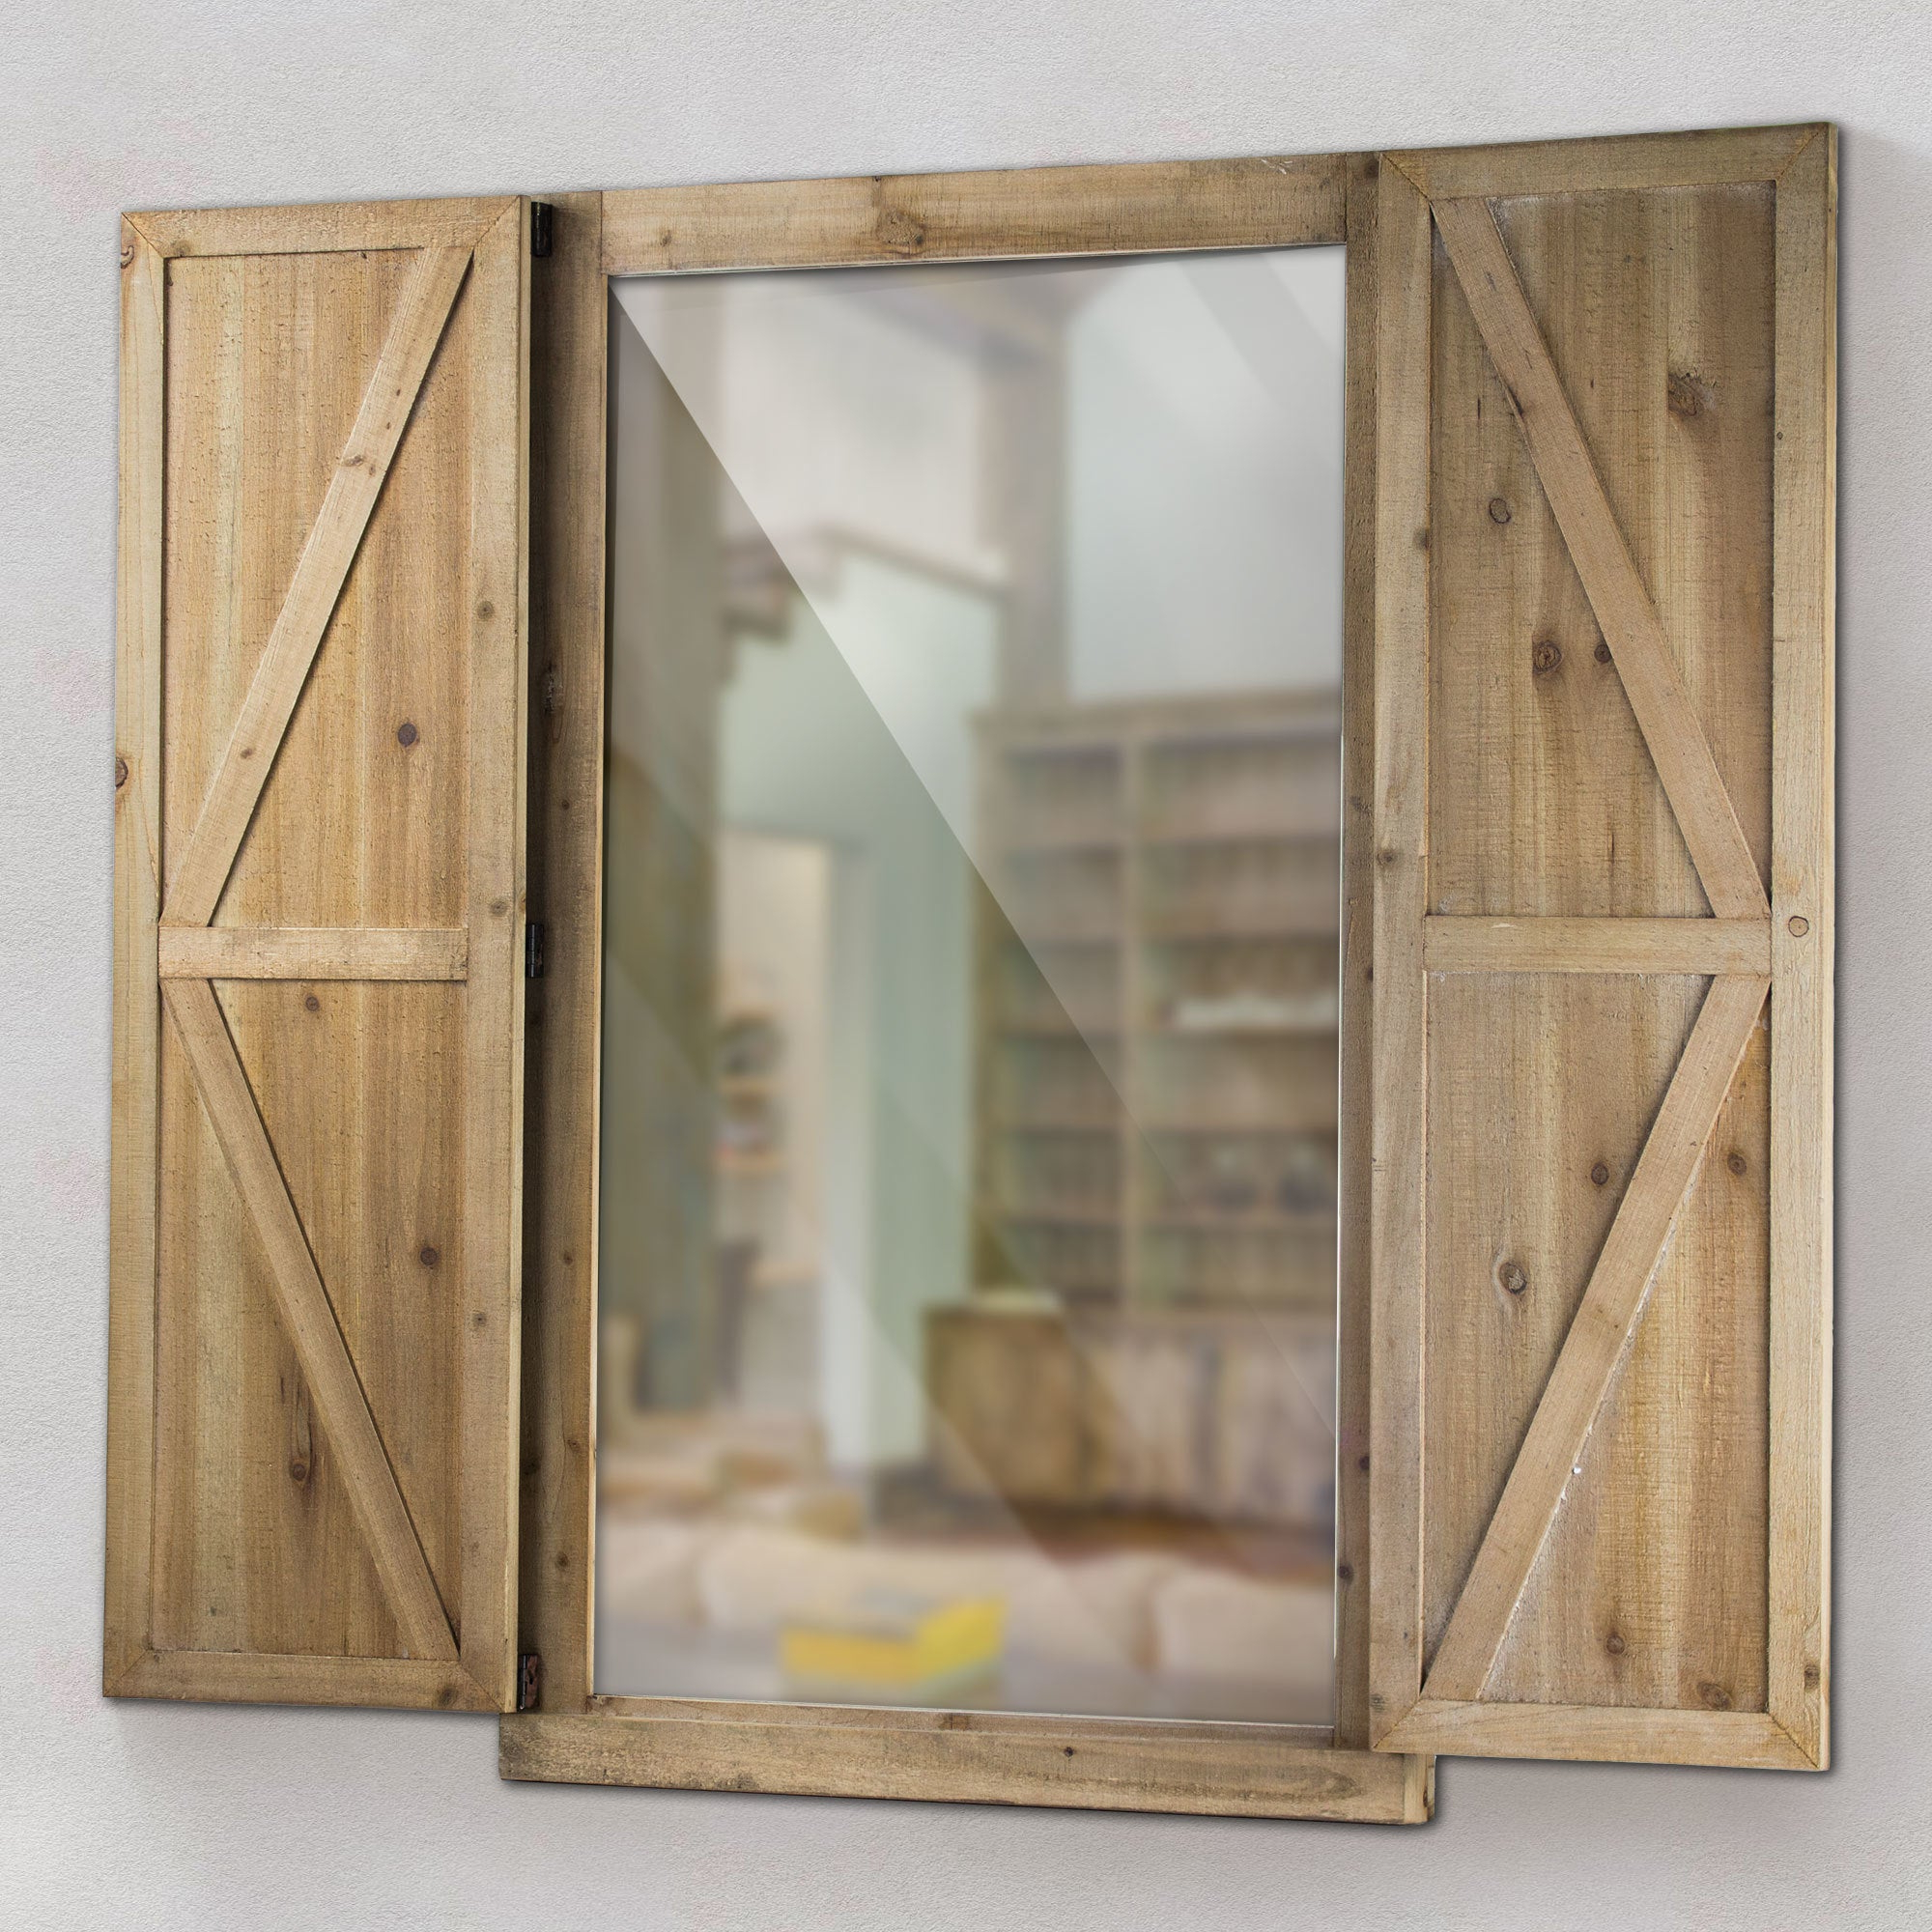 Newest Shuttered Wall Mirror With Rustic Wooden Frame Farmhouse Decor Regarding Rustic Wood Wall Mirrors (View 15 of 20)